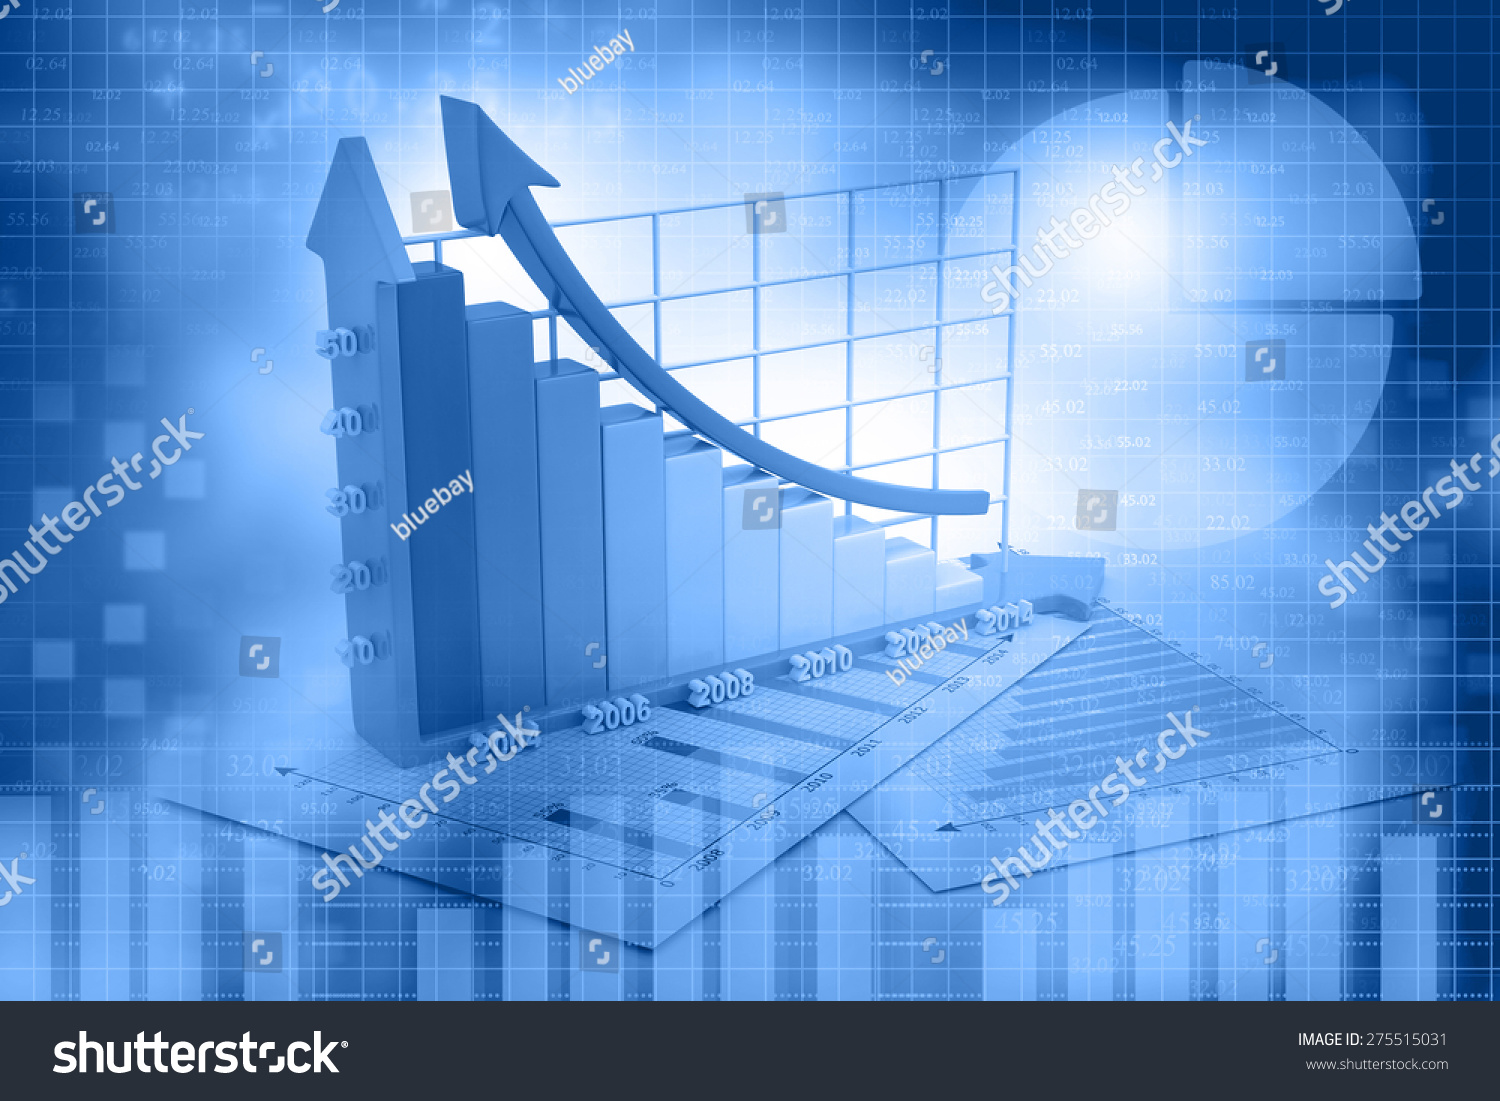 Business growth chart background stock illustration 275515031 business growth chart background nvjuhfo Gallery